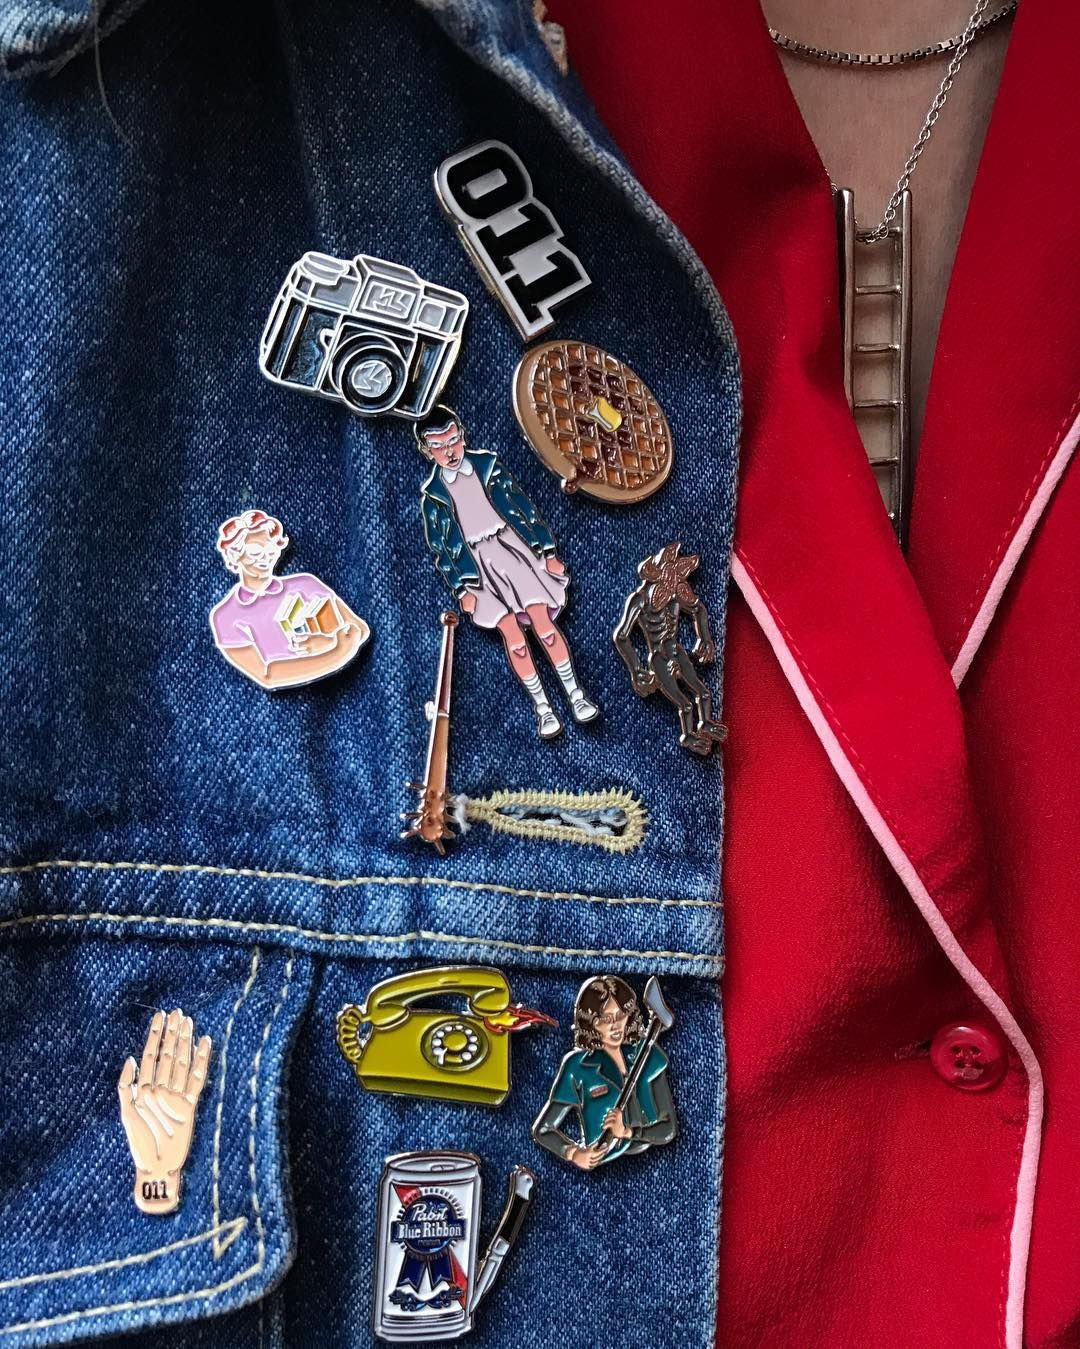 STRANGER THINGS COLLECTION | VERAMEAT PINS | pretty clothes